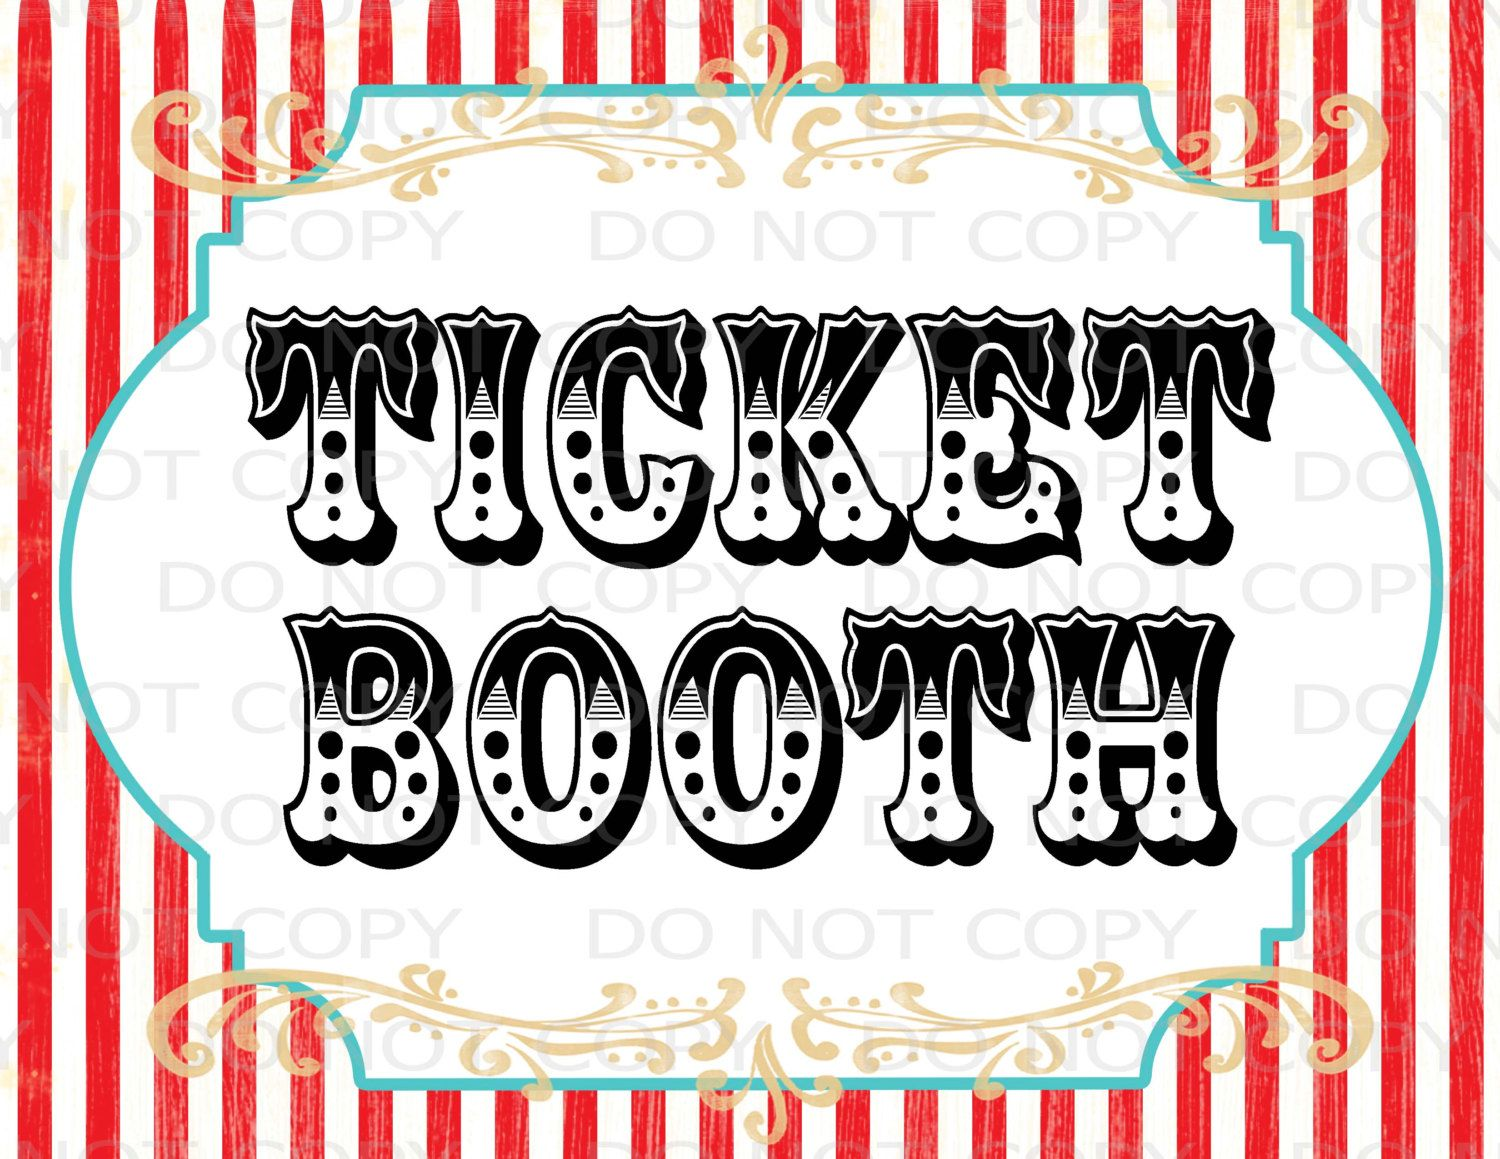 Printable DIY Vintage Circus Ticket Booth Table sign.